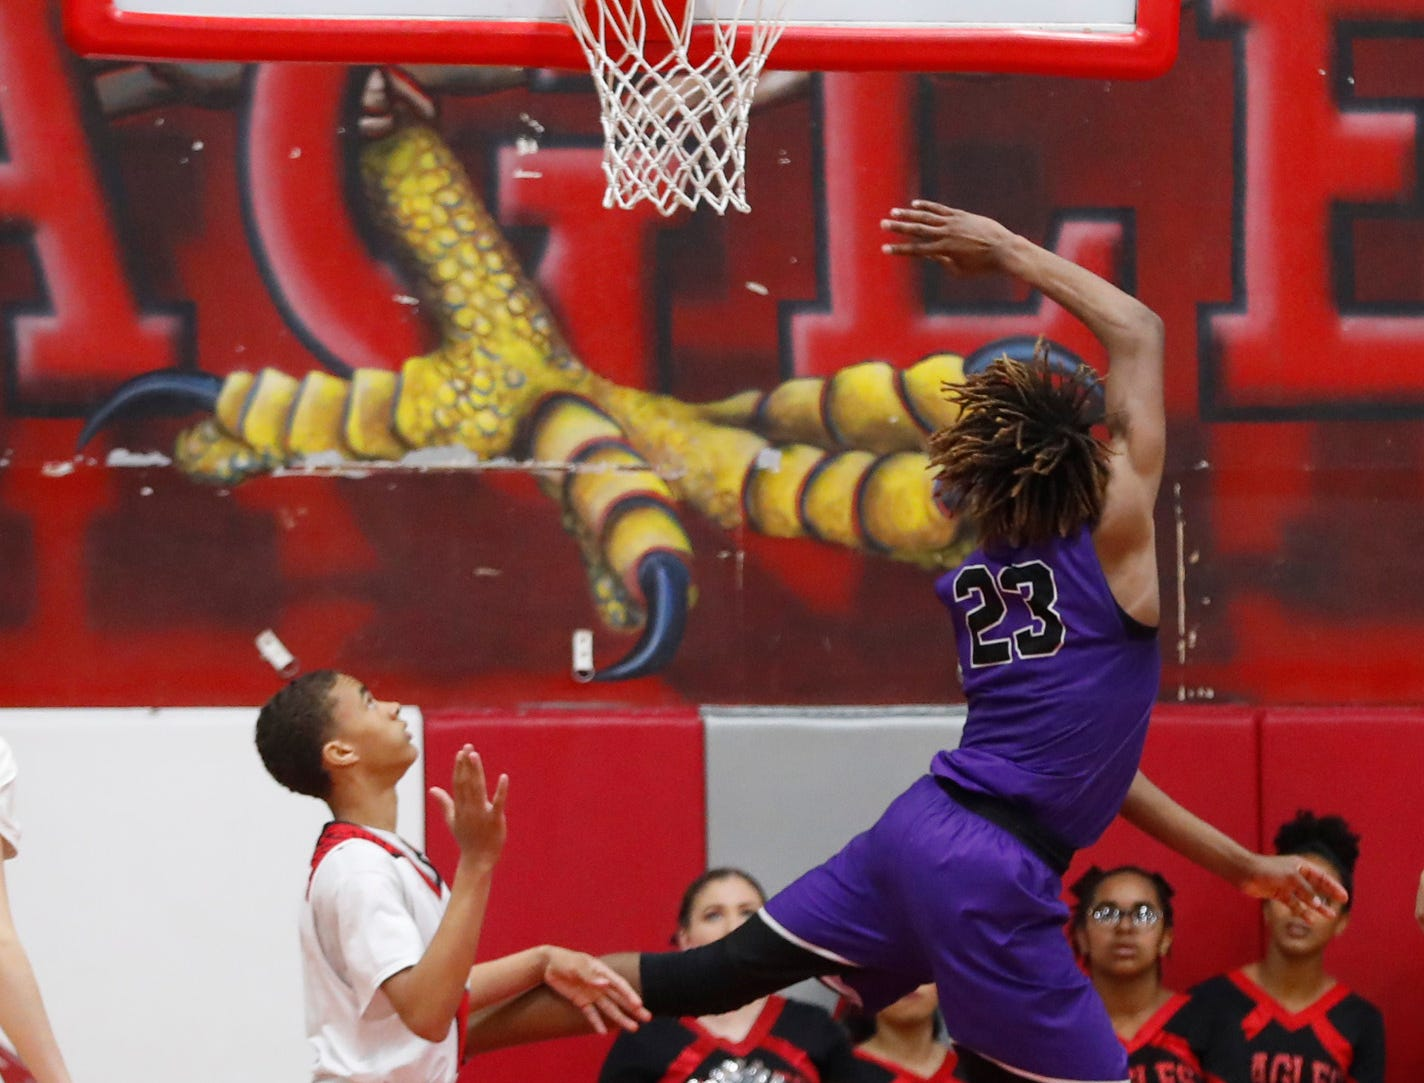 Millennium's DaRon Holmes (23) makes a layup against Ironwood during the first half of the 5A state quarterfinal game at Ironwood High School in Glendale, Ariz. on February 15, 2019.